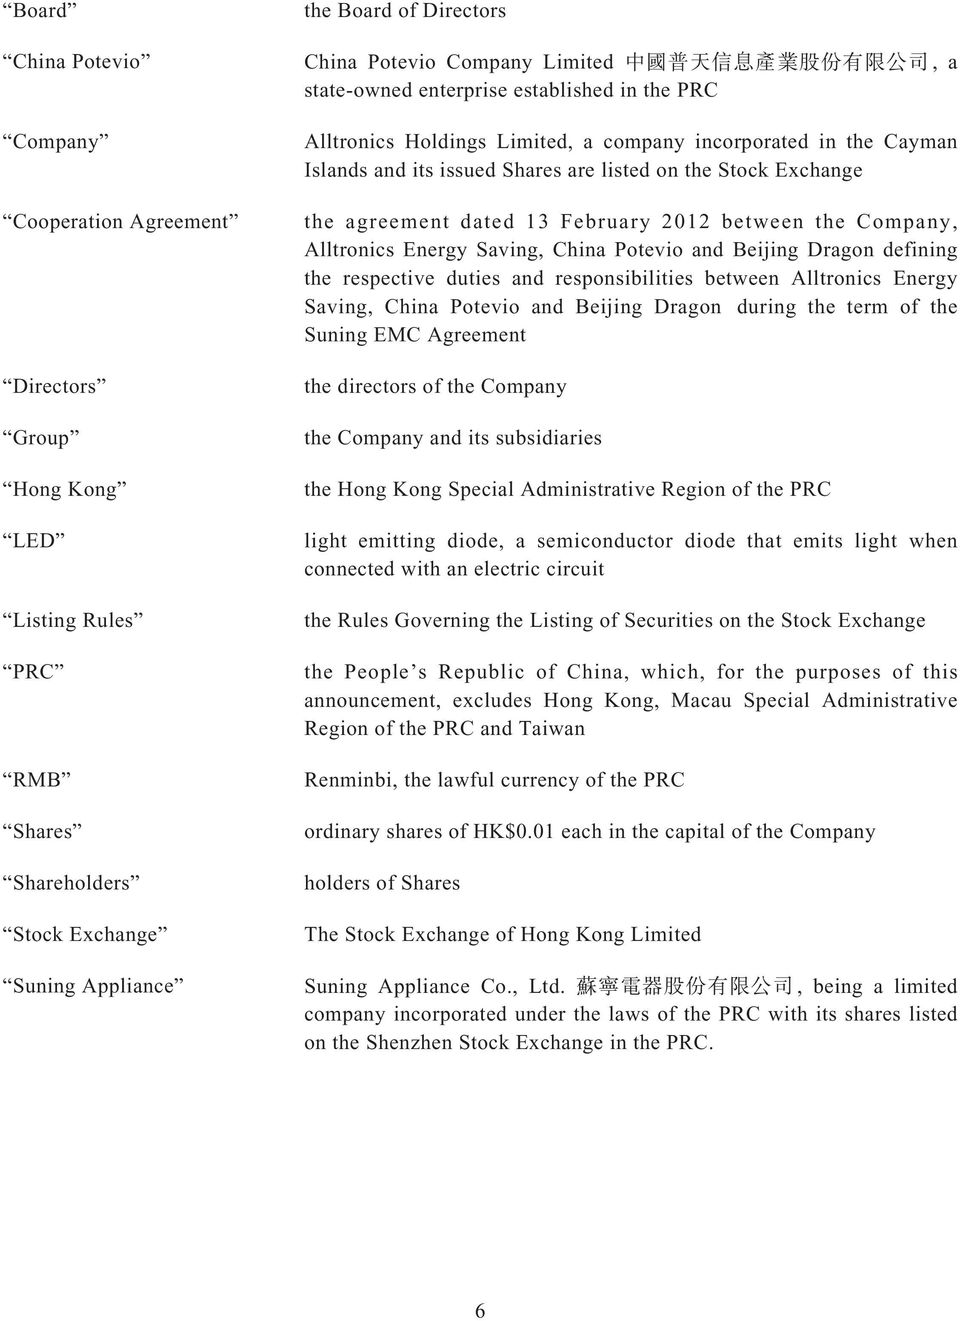 dated 13 February 2012 between the Company, Alltronics Energy Saving, China Potevio and Beijing Dragon defining the respective duties and responsibilities between Alltronics Energy Saving, China